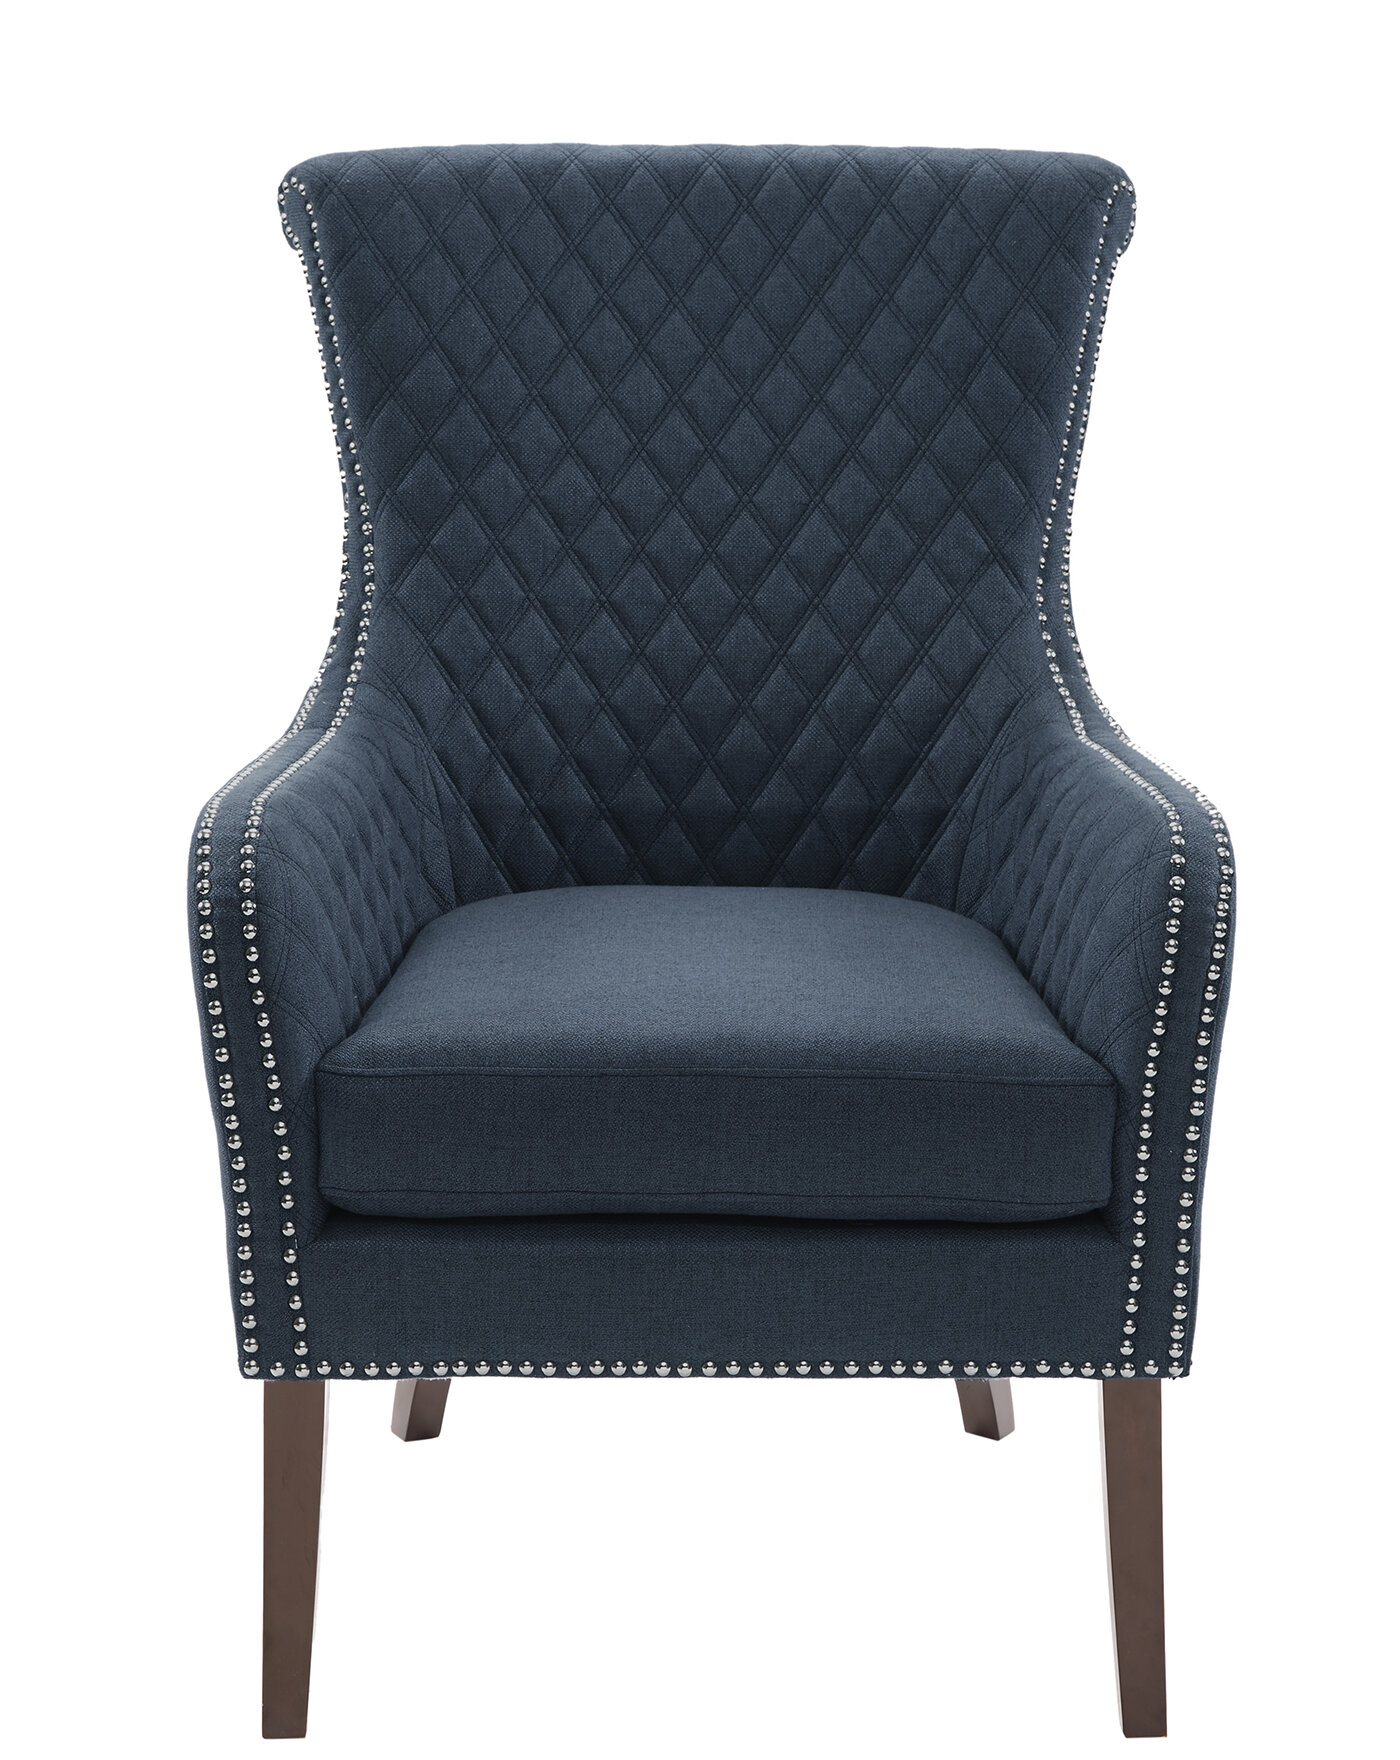 Busti Wingback Chair Pertaining To Busti Wingback Chairs (View 2 of 15)